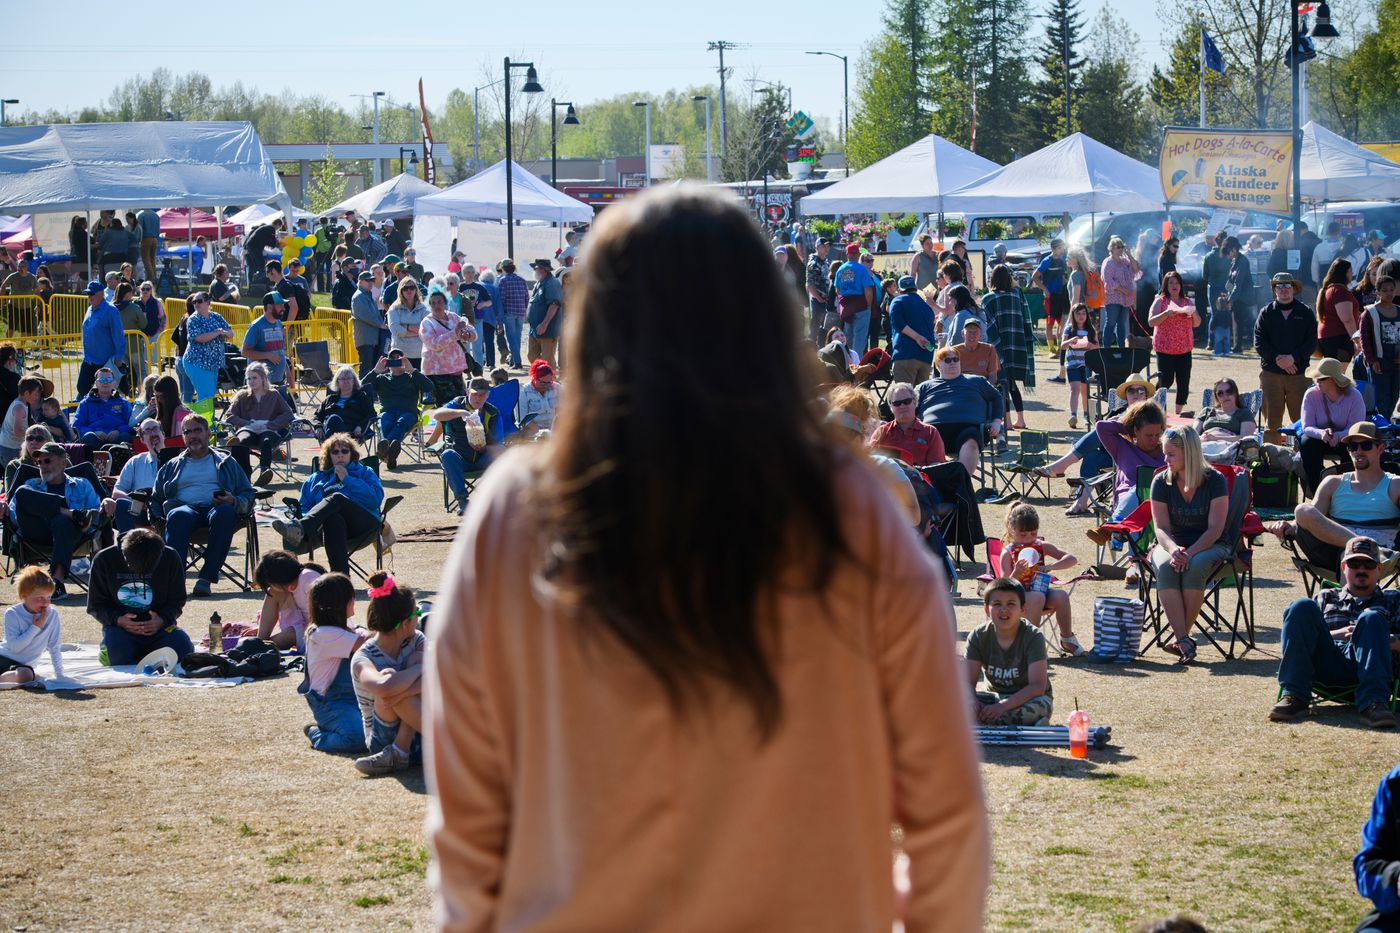 Anne Zink, Alaska's chief medical officer, speaks to a crowd at the Party in the Park at Soldotna Creek Park on May 26, 2021. (Marc Lester / ADN)